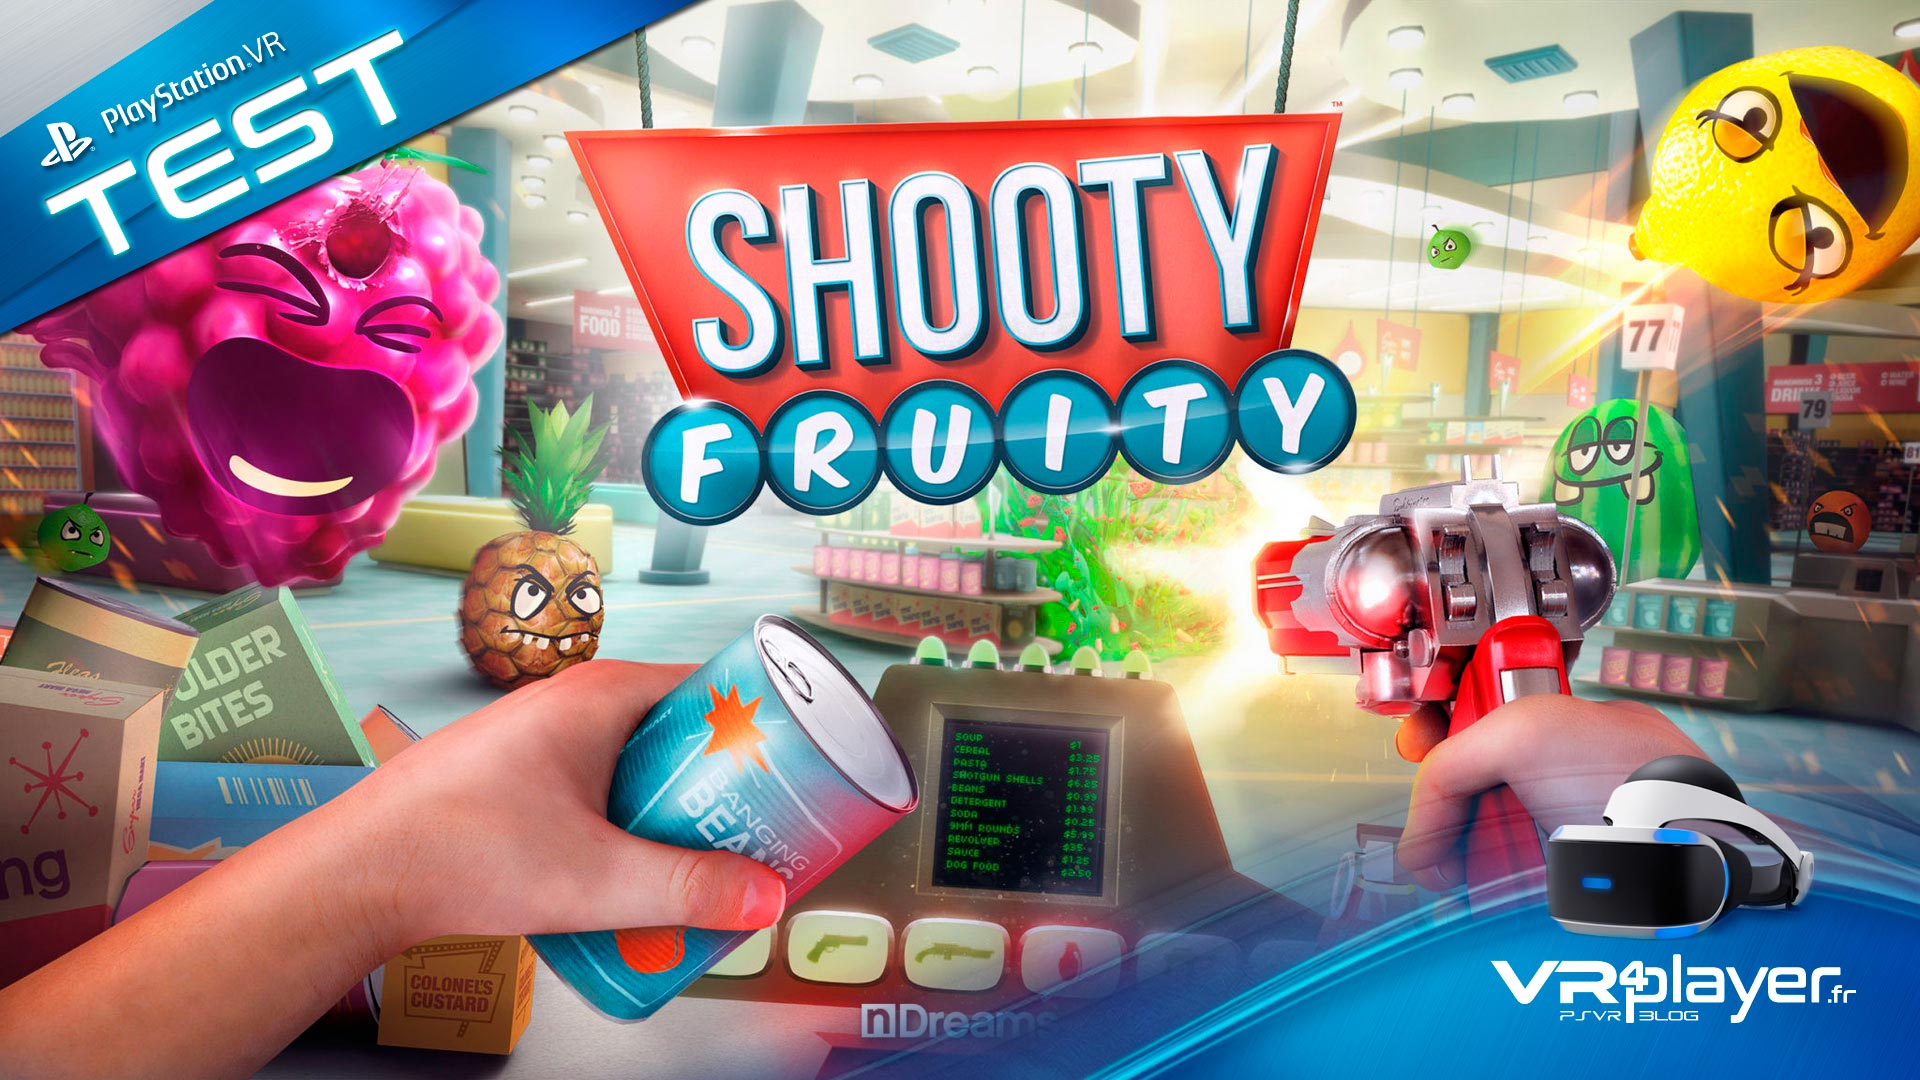 Shooty Fruity Test Review VR4Player.fr